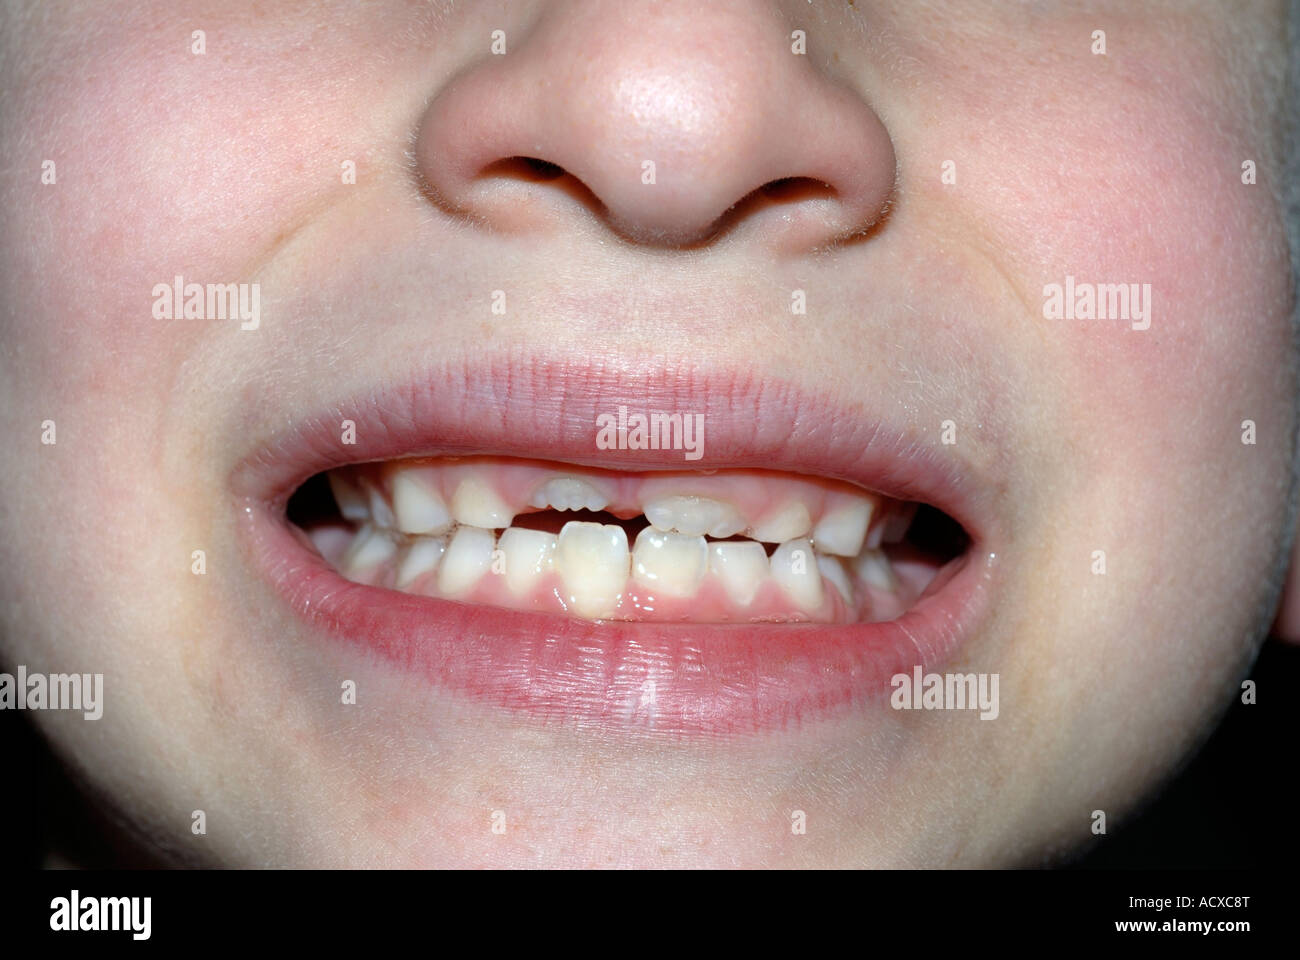 8 5 year old boy showing his 4 permanent incisors coming in - Stock Image